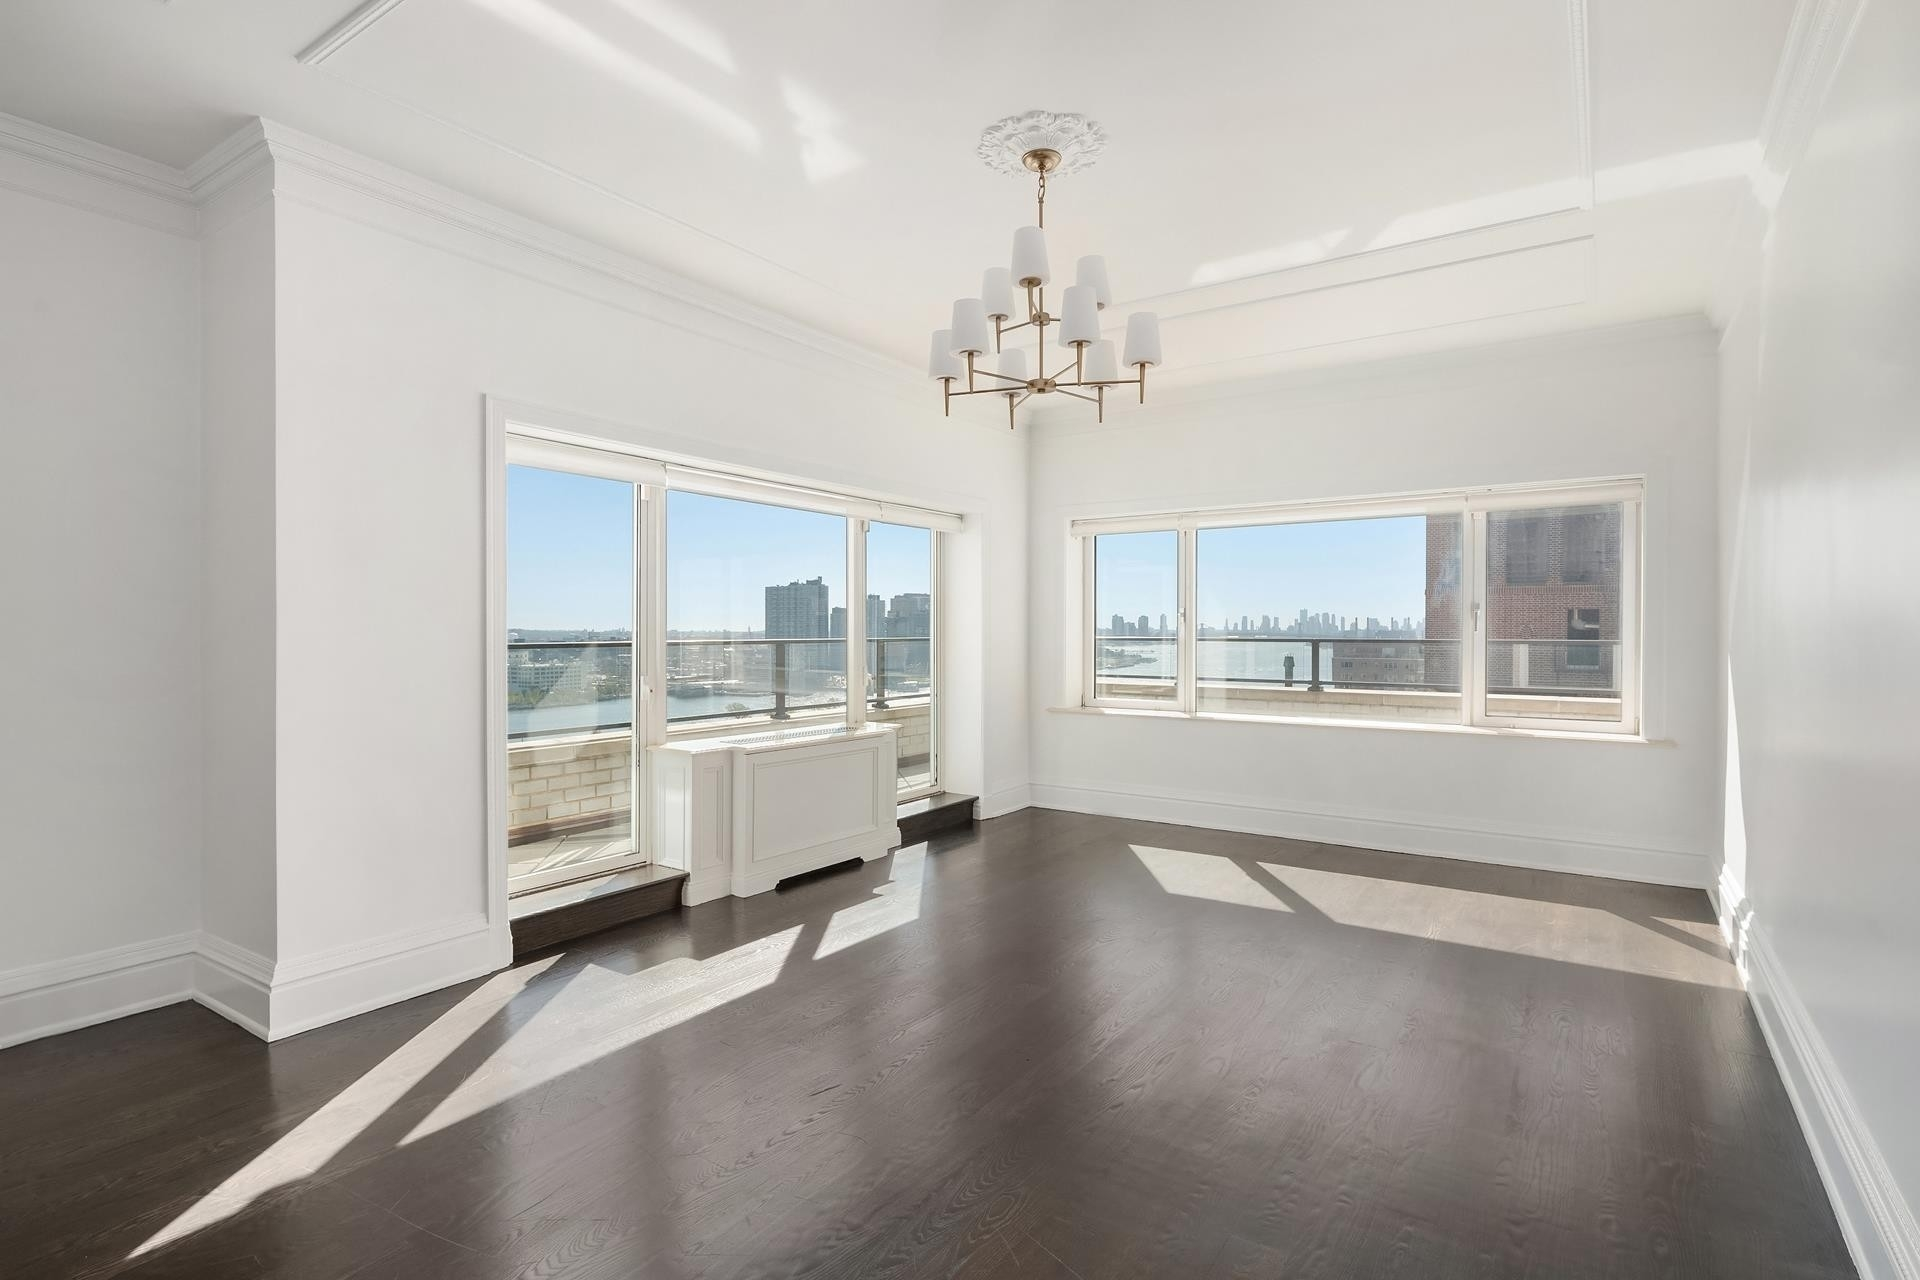 Co-op Properties for Sale at 35 Sutton Pl, PHD Sutton Place, New York, NY 10022